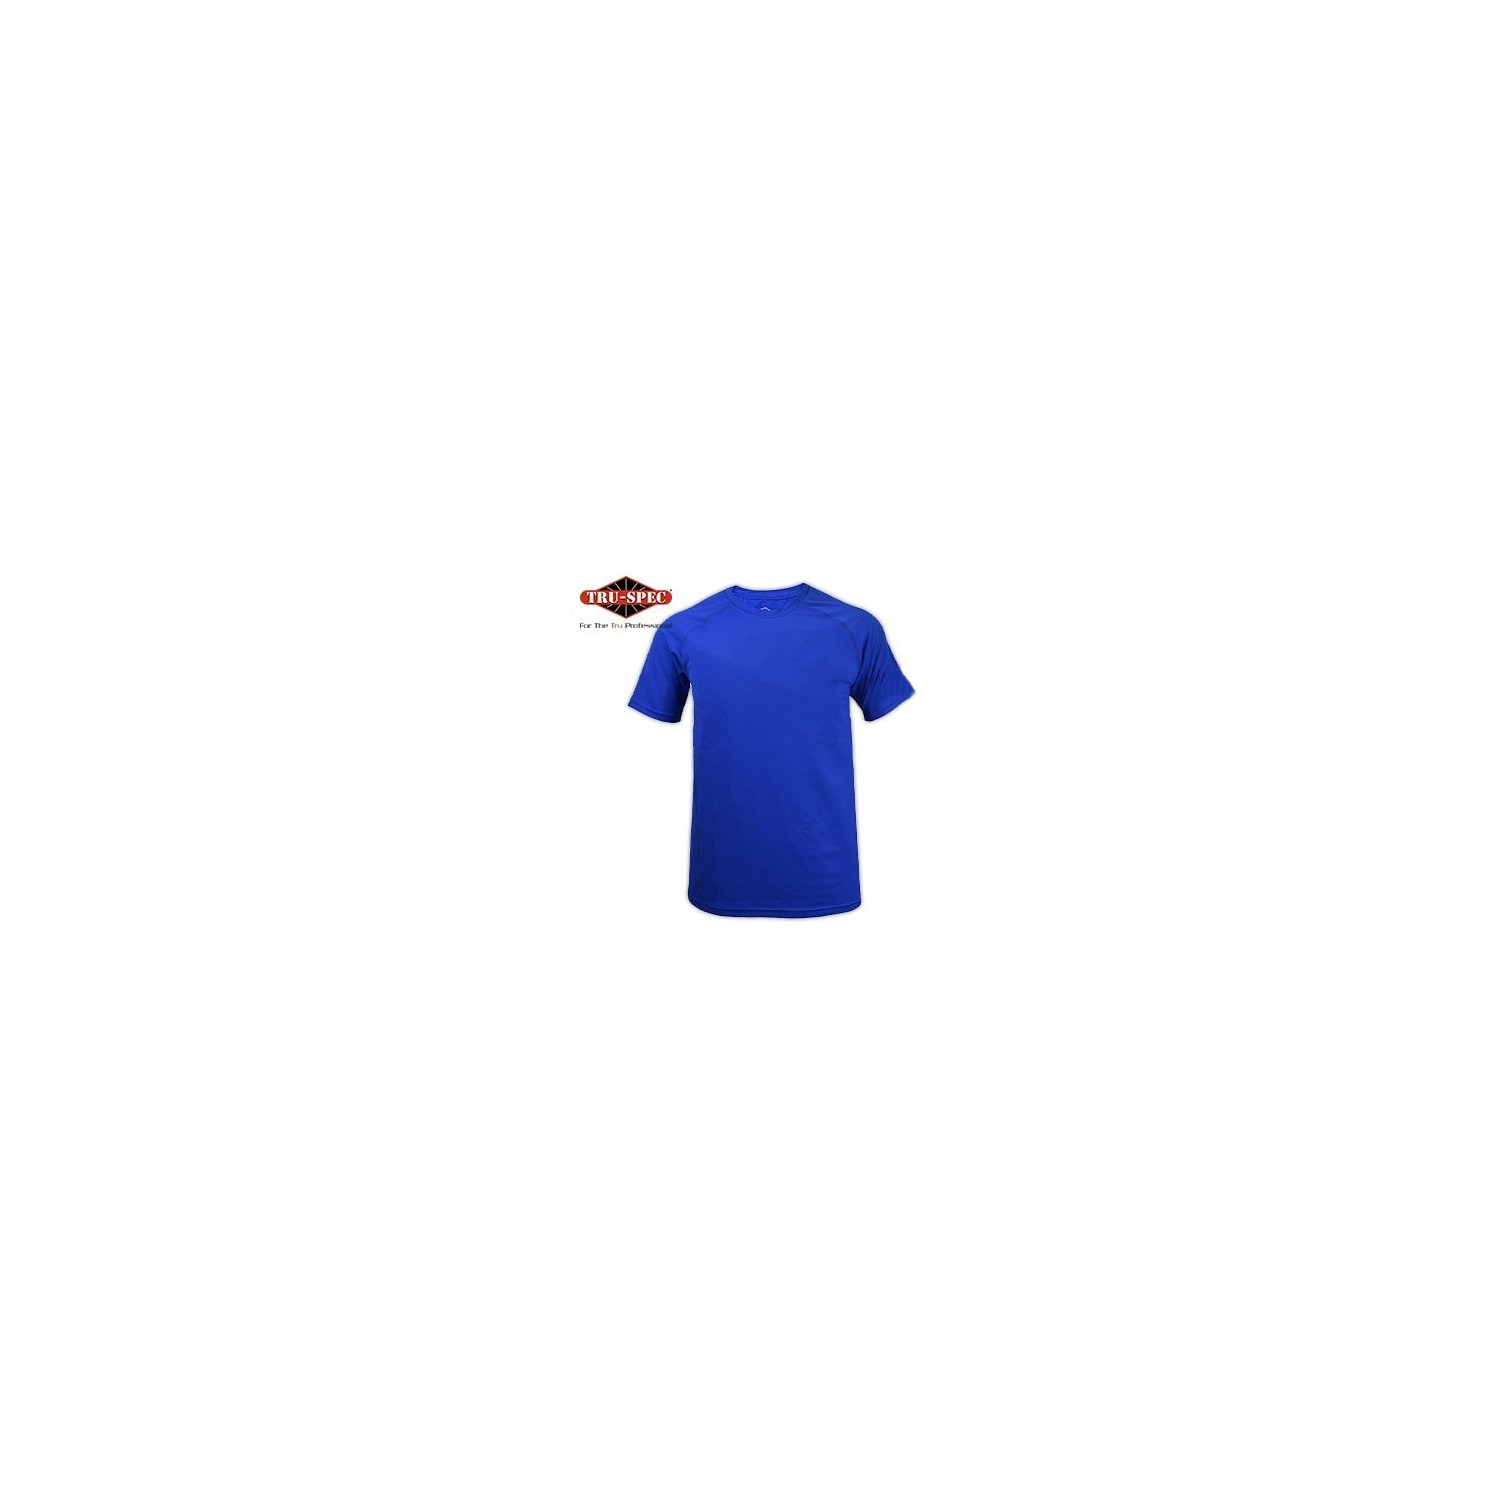 POLERA DRY FIT II, SS, ROYAL BLUE